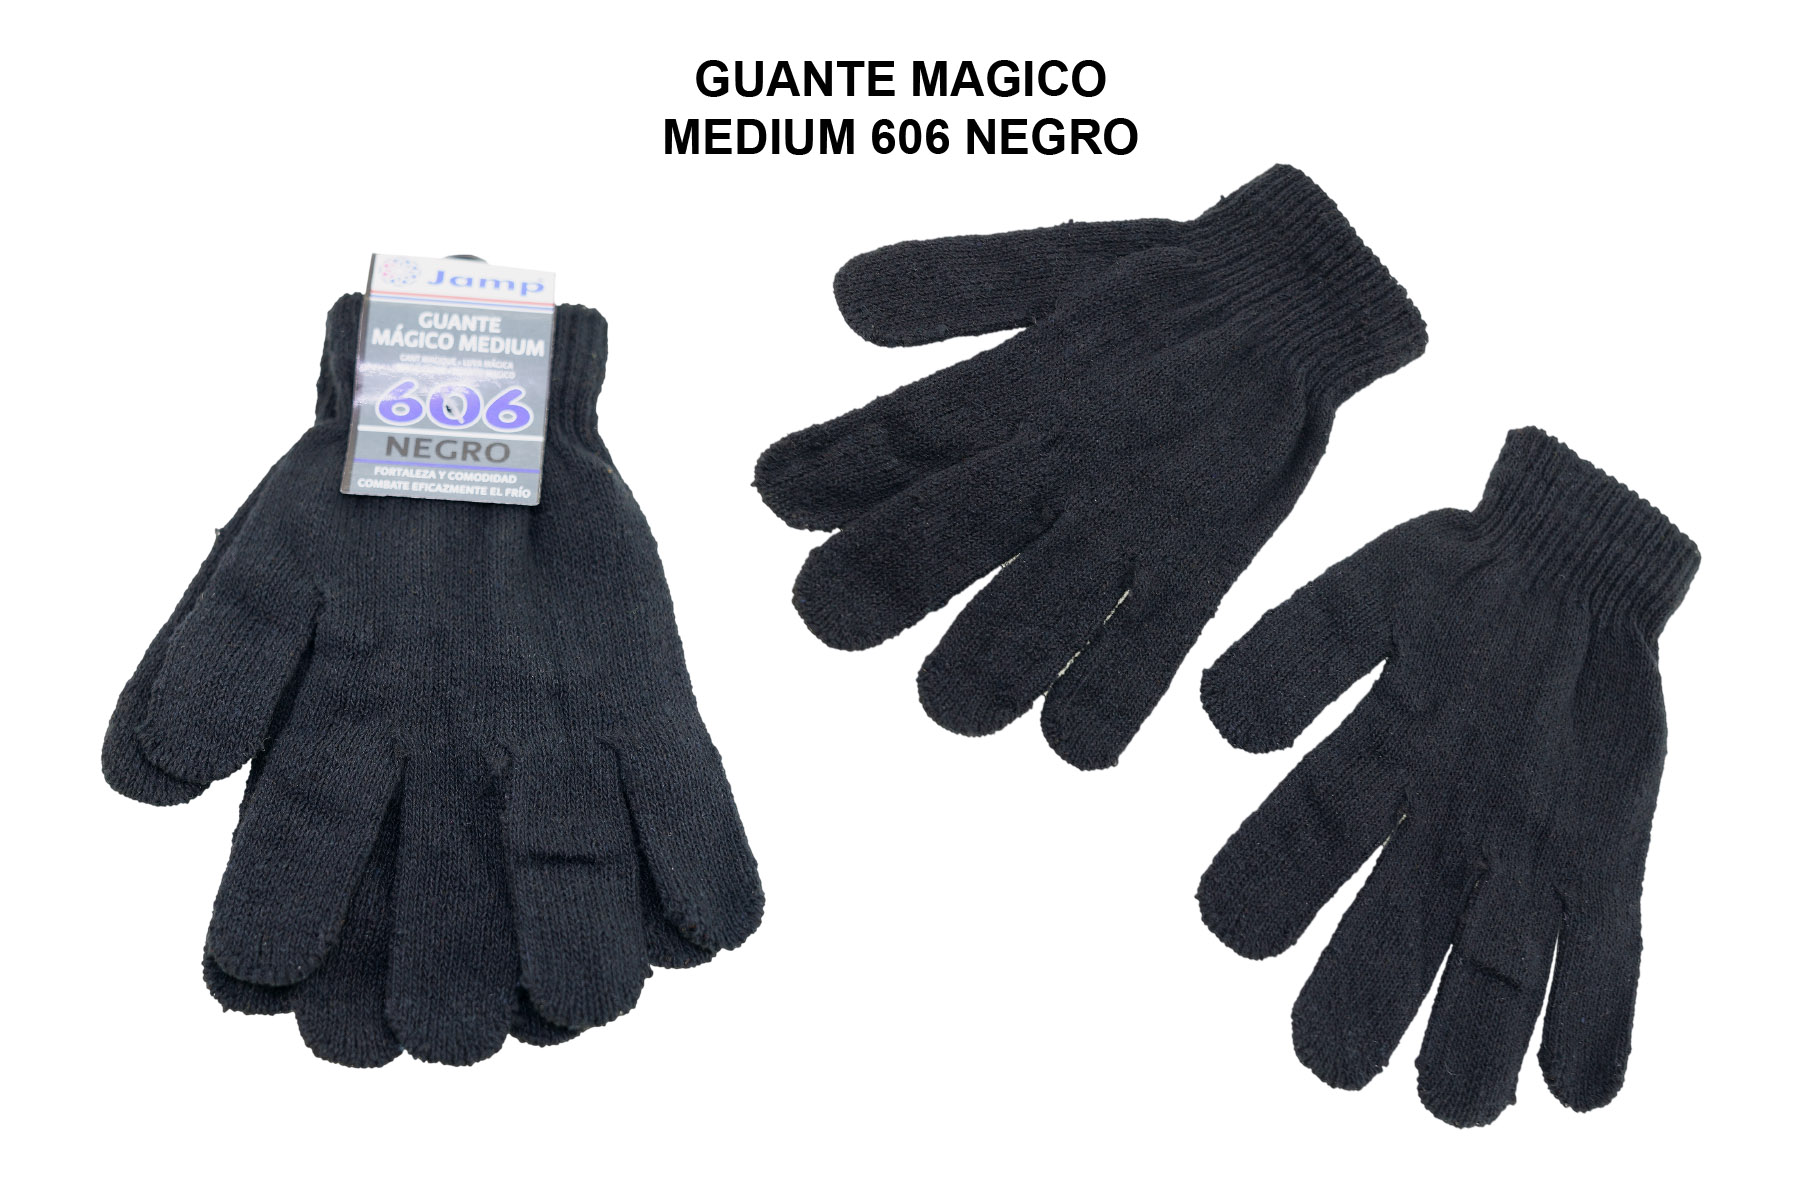 GUANTE MAGICO MEDIUM 606 NEGRO